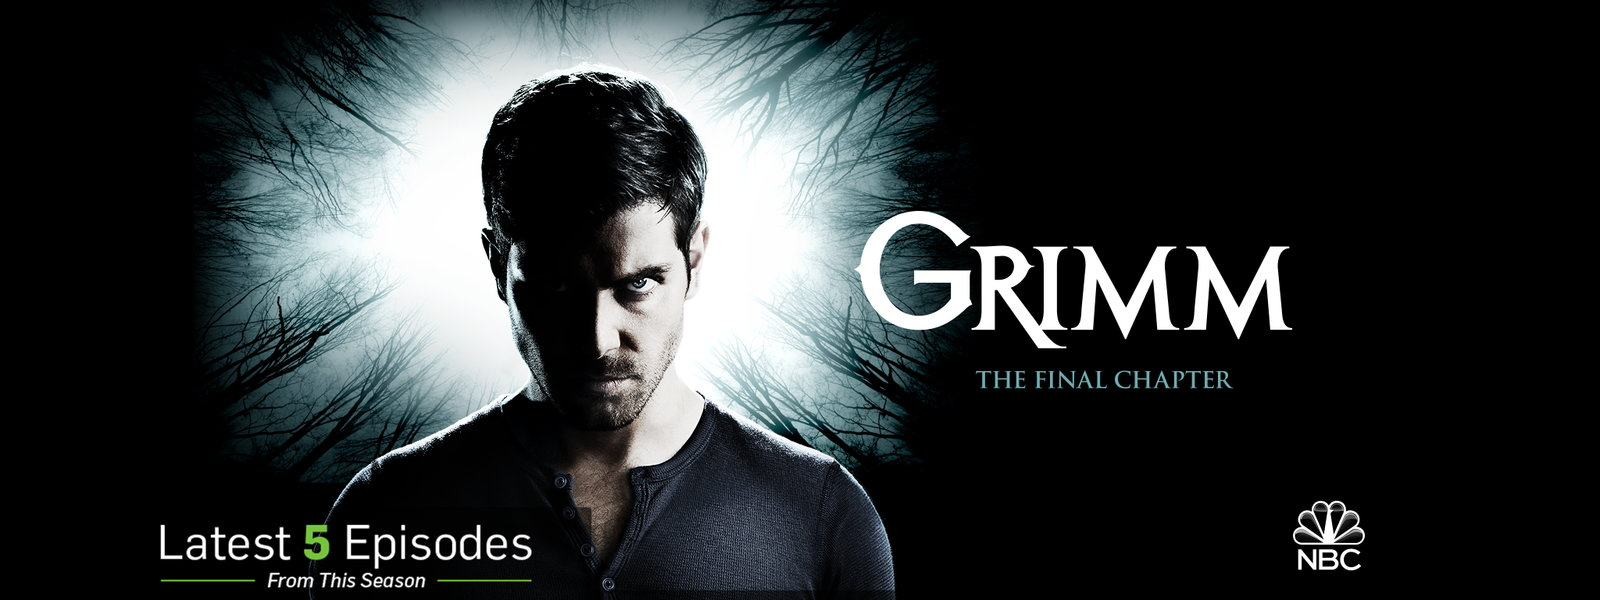 #1 TV Series Review .:GRIMM:.